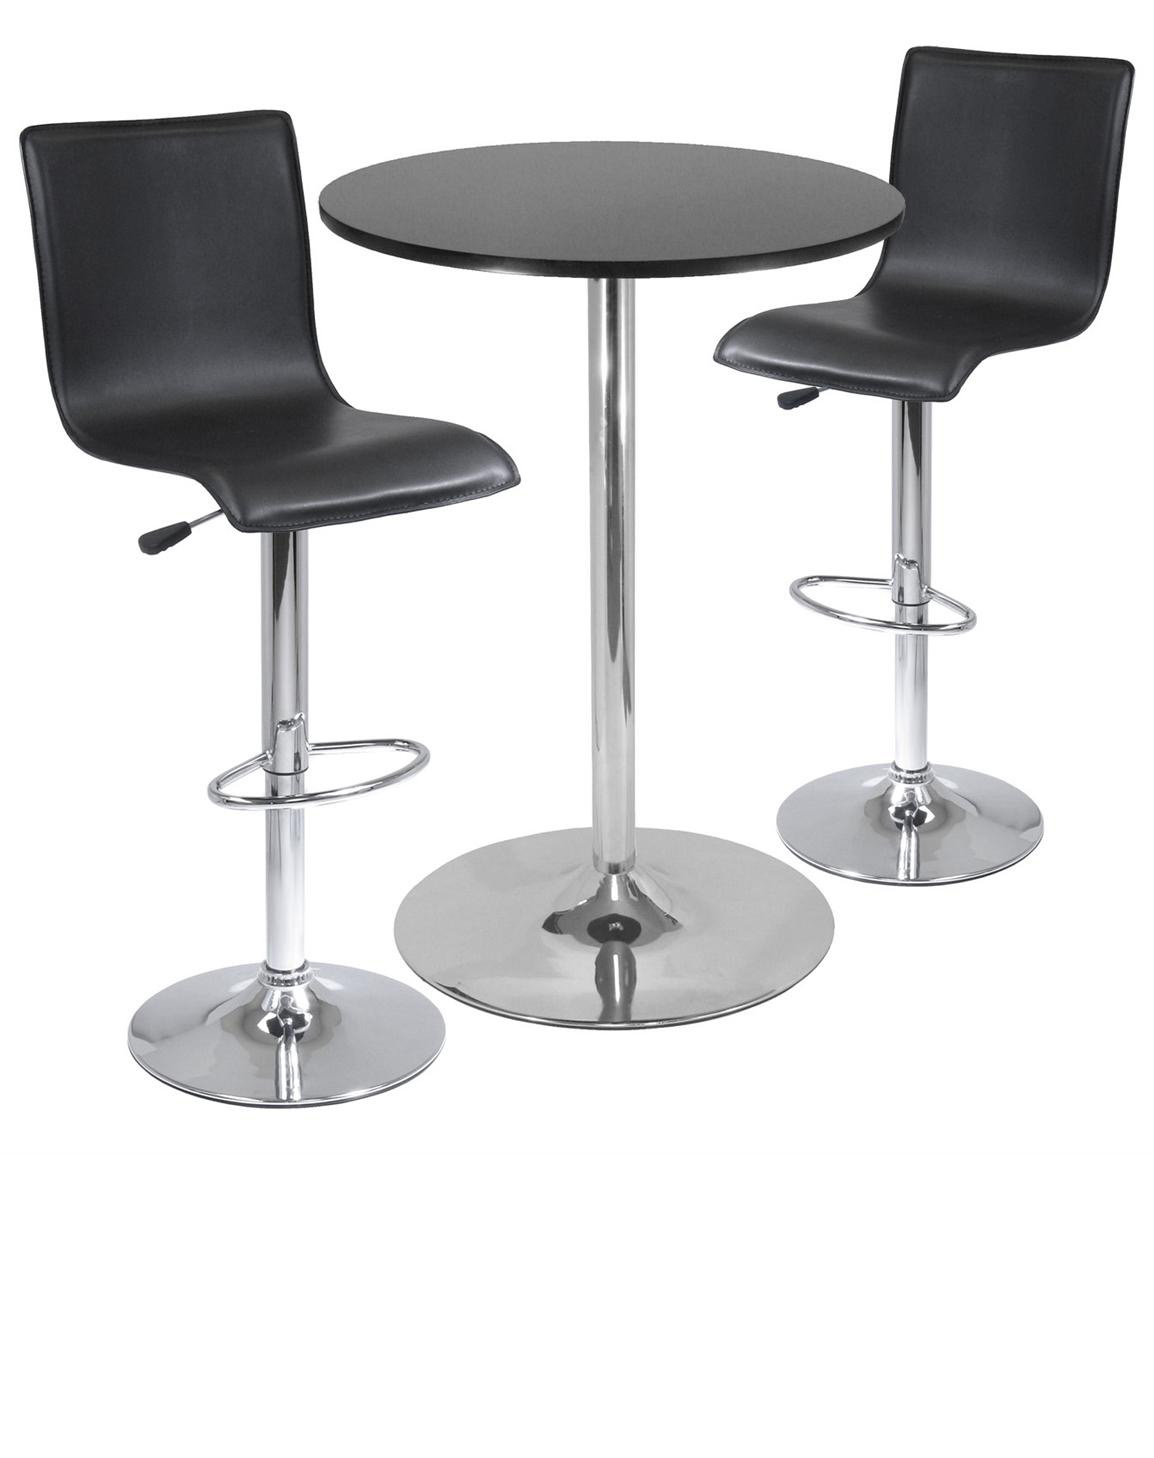 Bar Tables And Chairs Tall Bar Tables A Space Saving Dining Furniture For Small